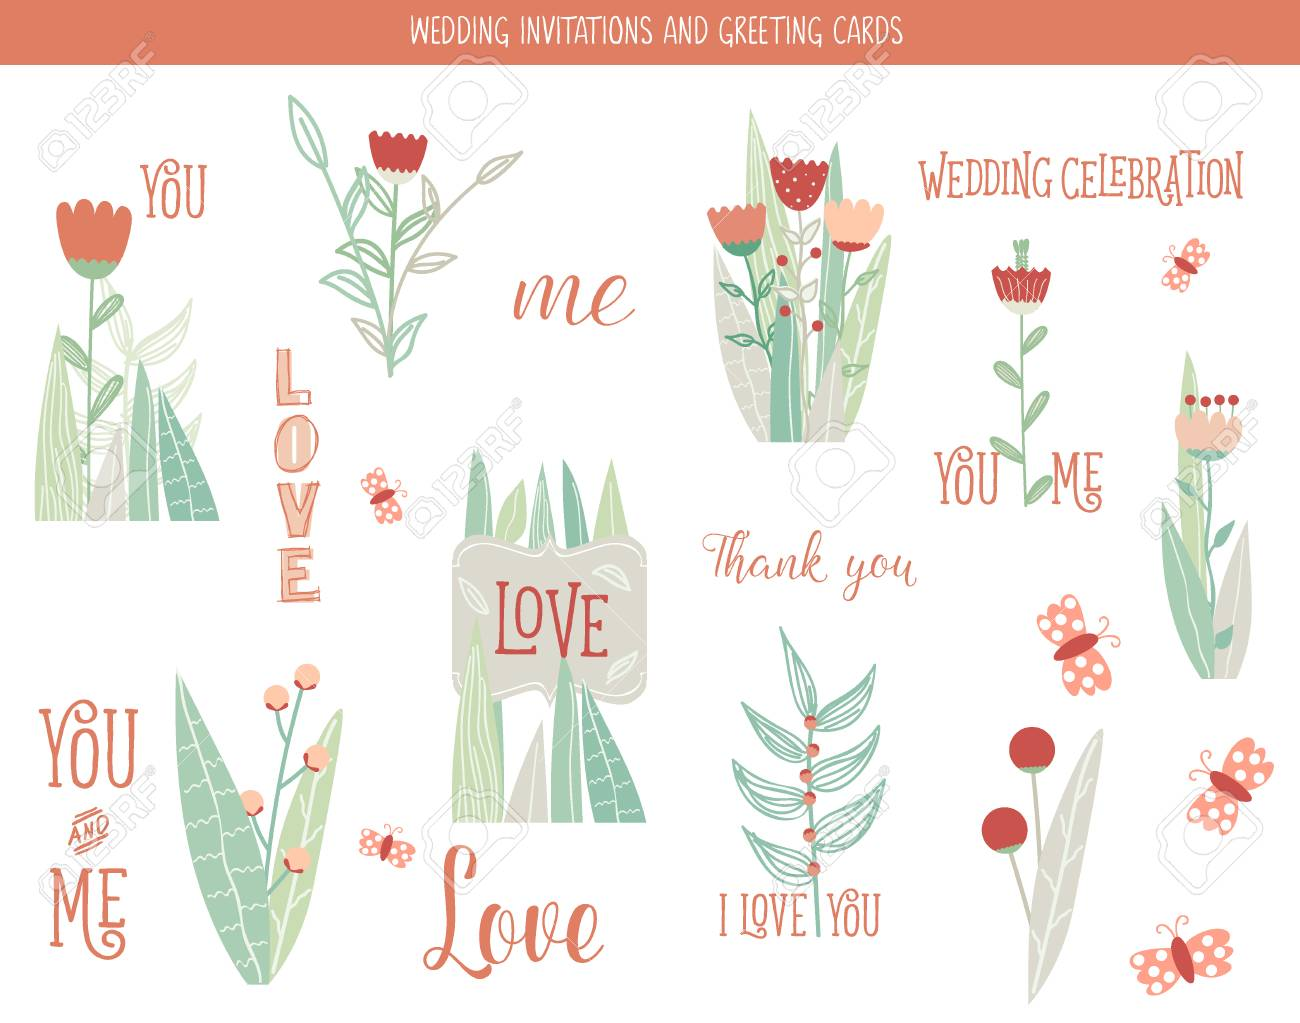 wedding invitation card with romantic flower templates royalty free